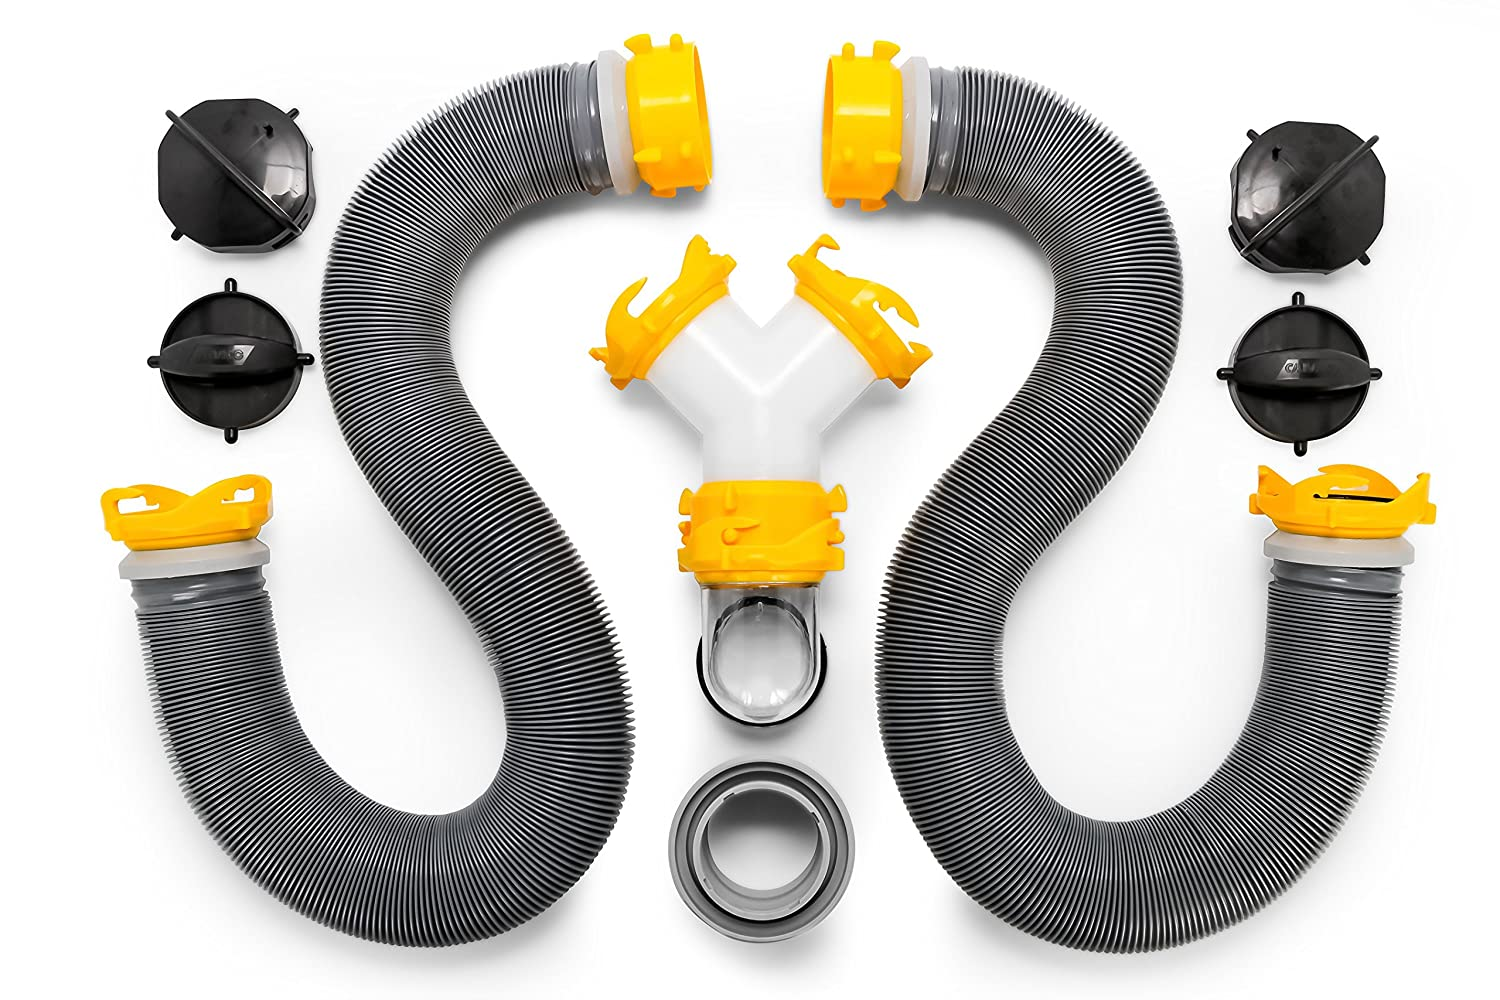 Easy to Use and Compresses for Simple Storage Heavy Duty Design with Swivel Fittings Camco 39665 Deluxe 10 Sewer Hose Extension Storage Caps Included